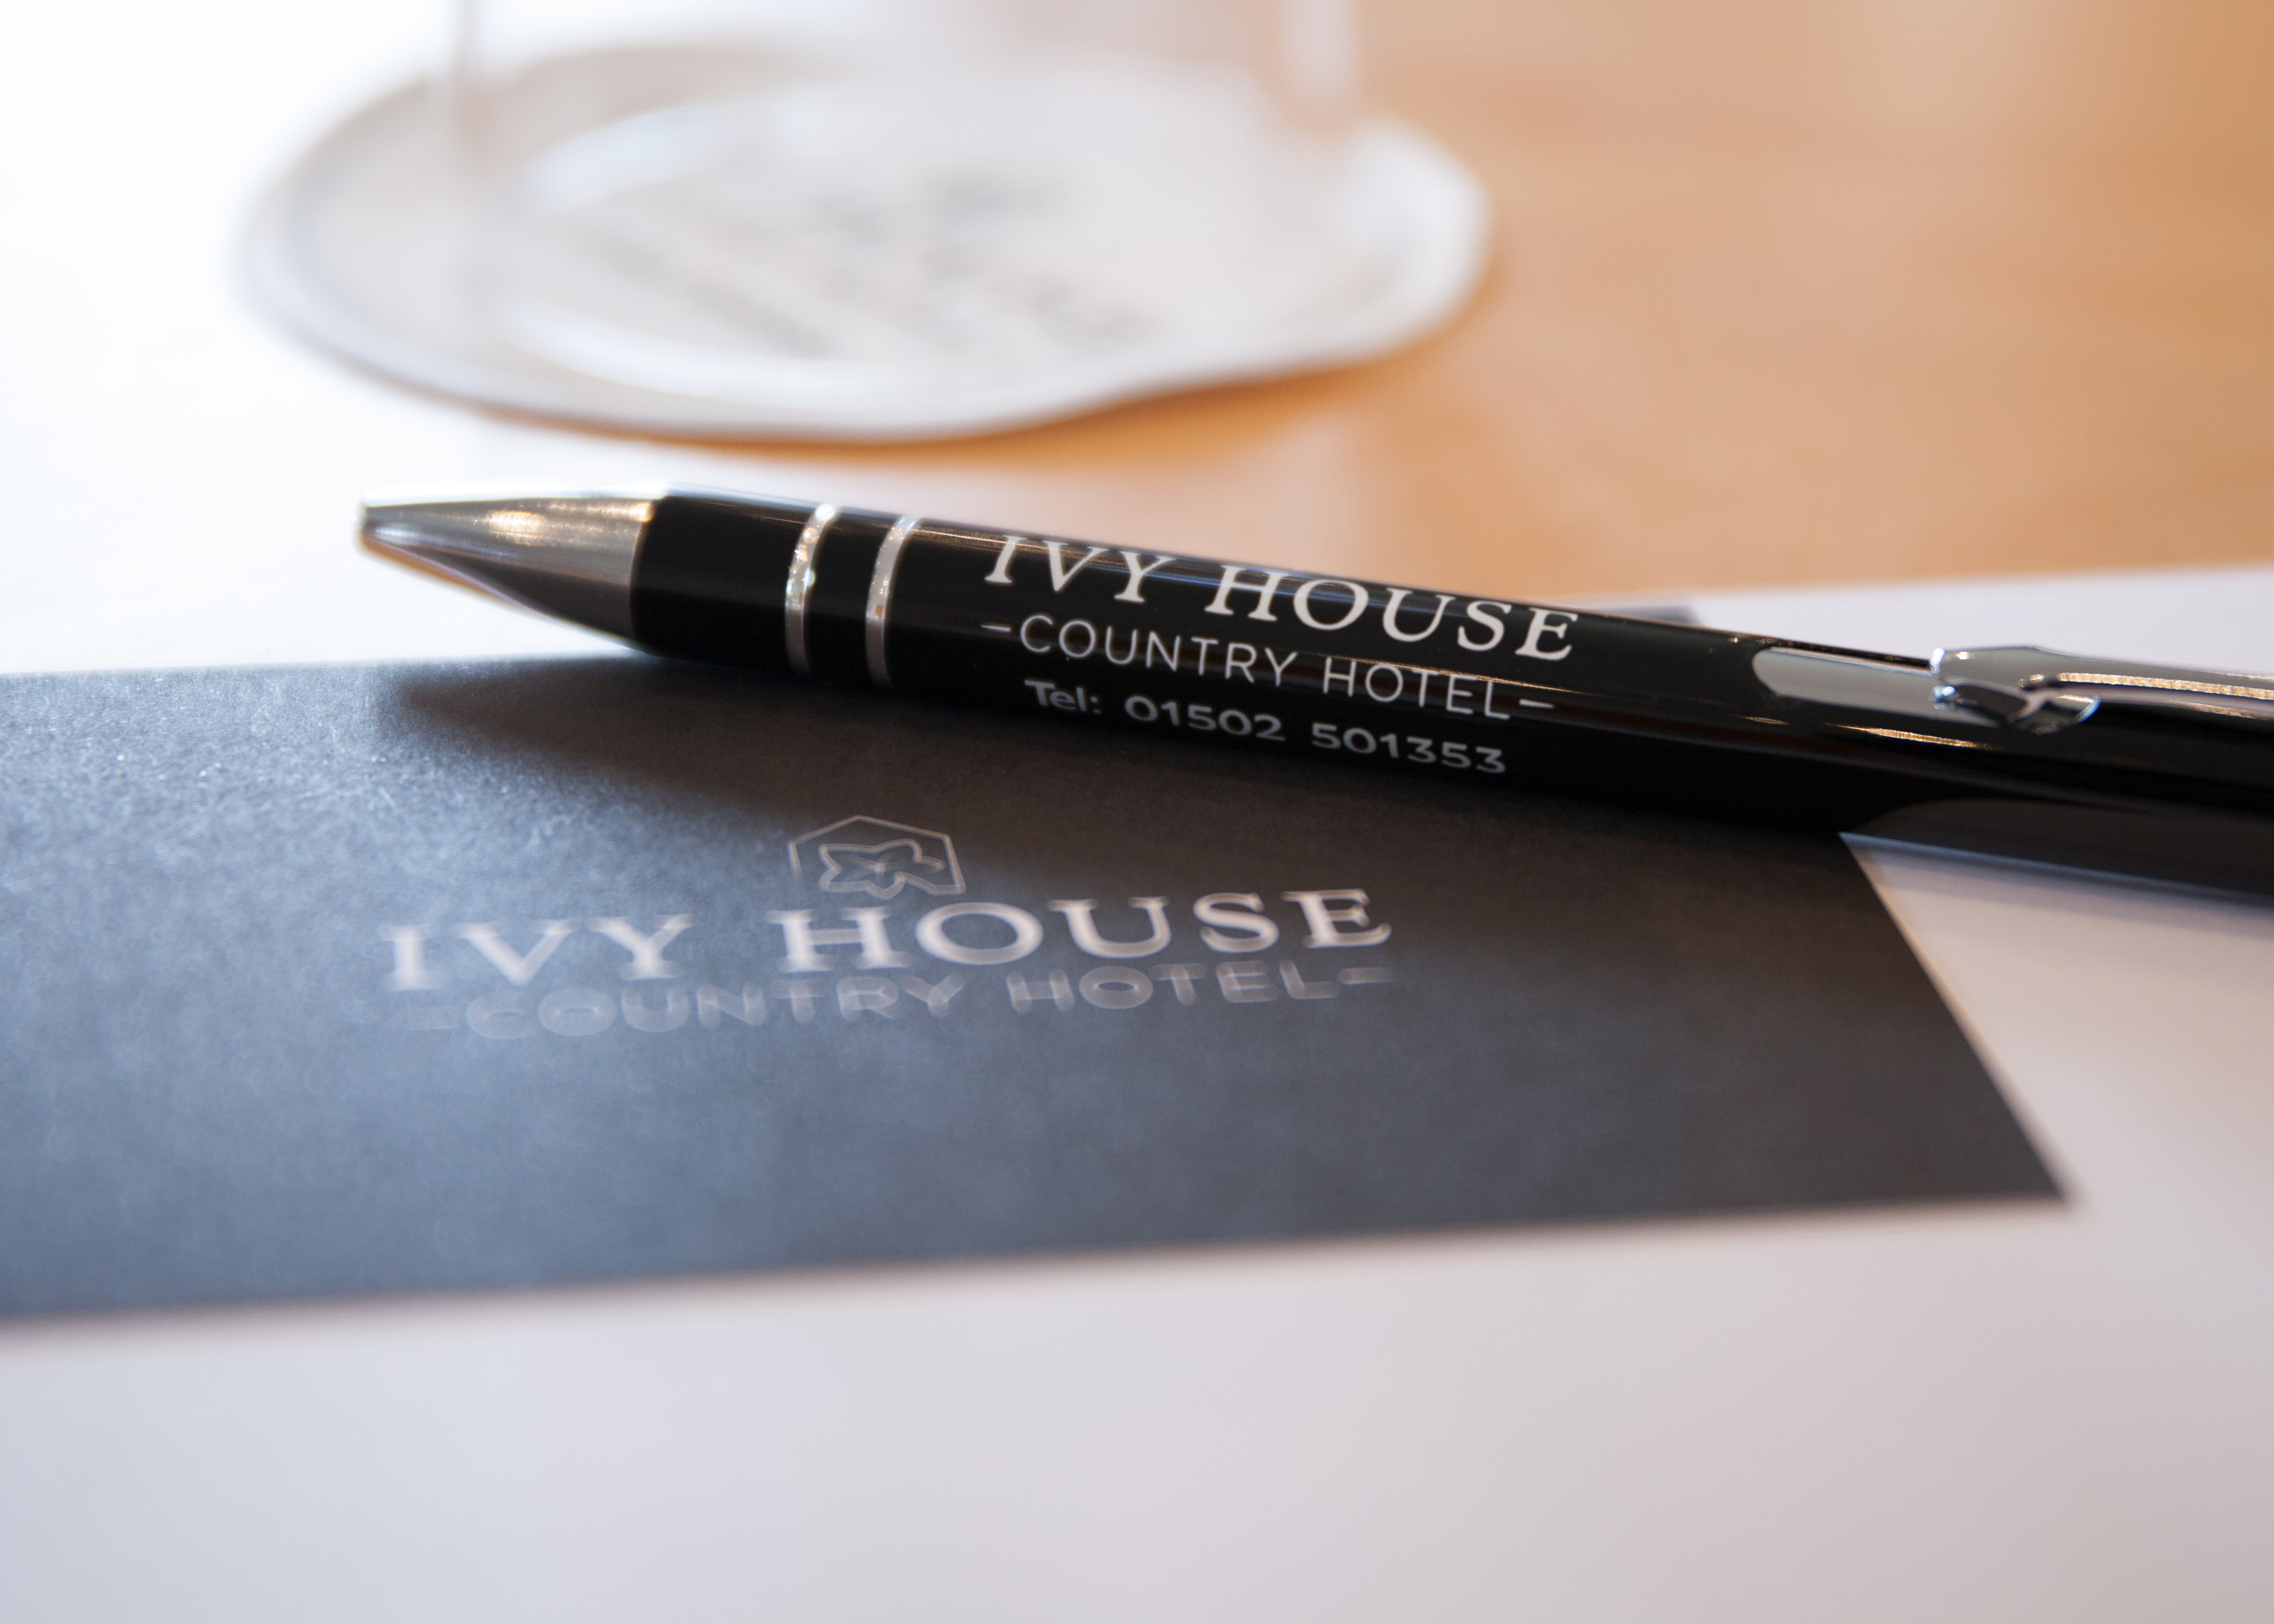 Ivy House Country Hotel in Lowestoft, Suffolk